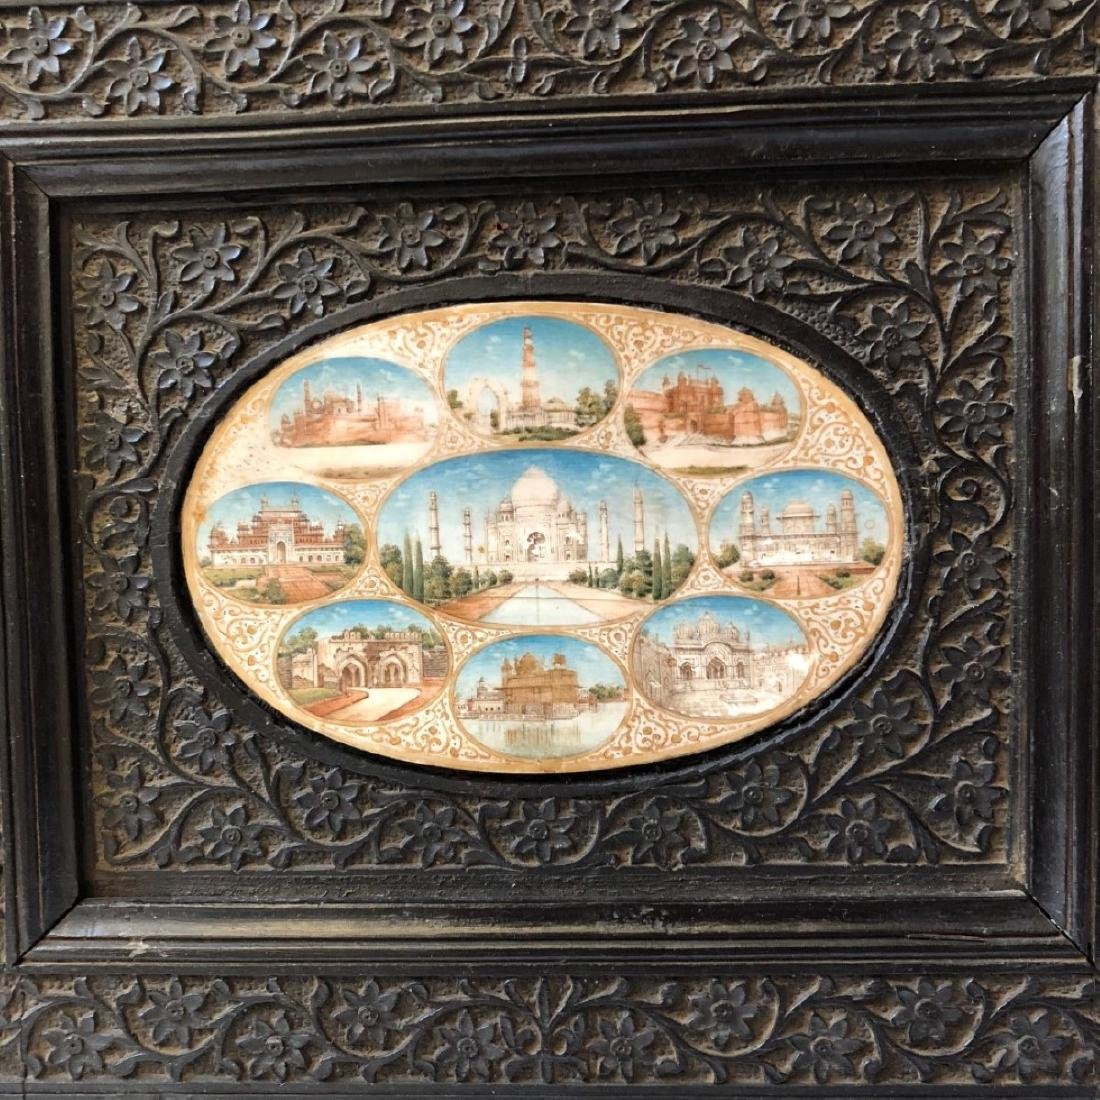 A BEAUTIFUL INDIAN ANTIQUE PAINTING IN FRAME - 2